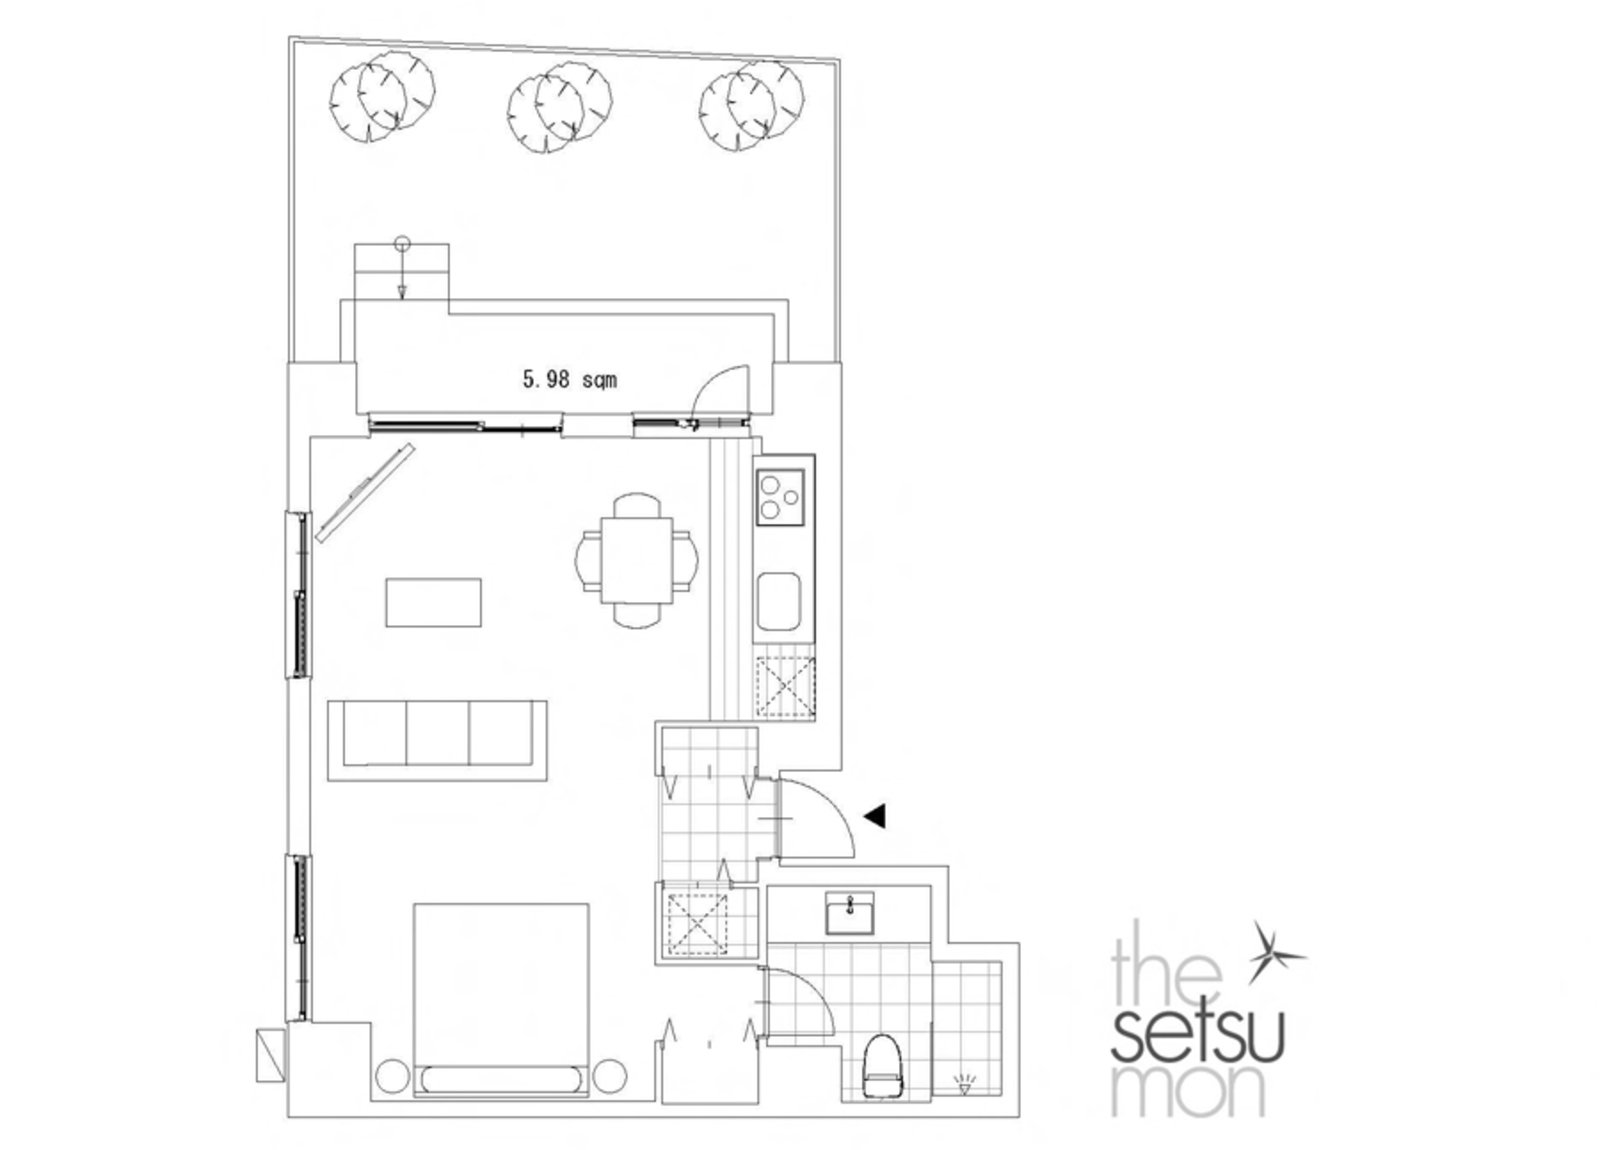 Setsumon studio apartment 102 large